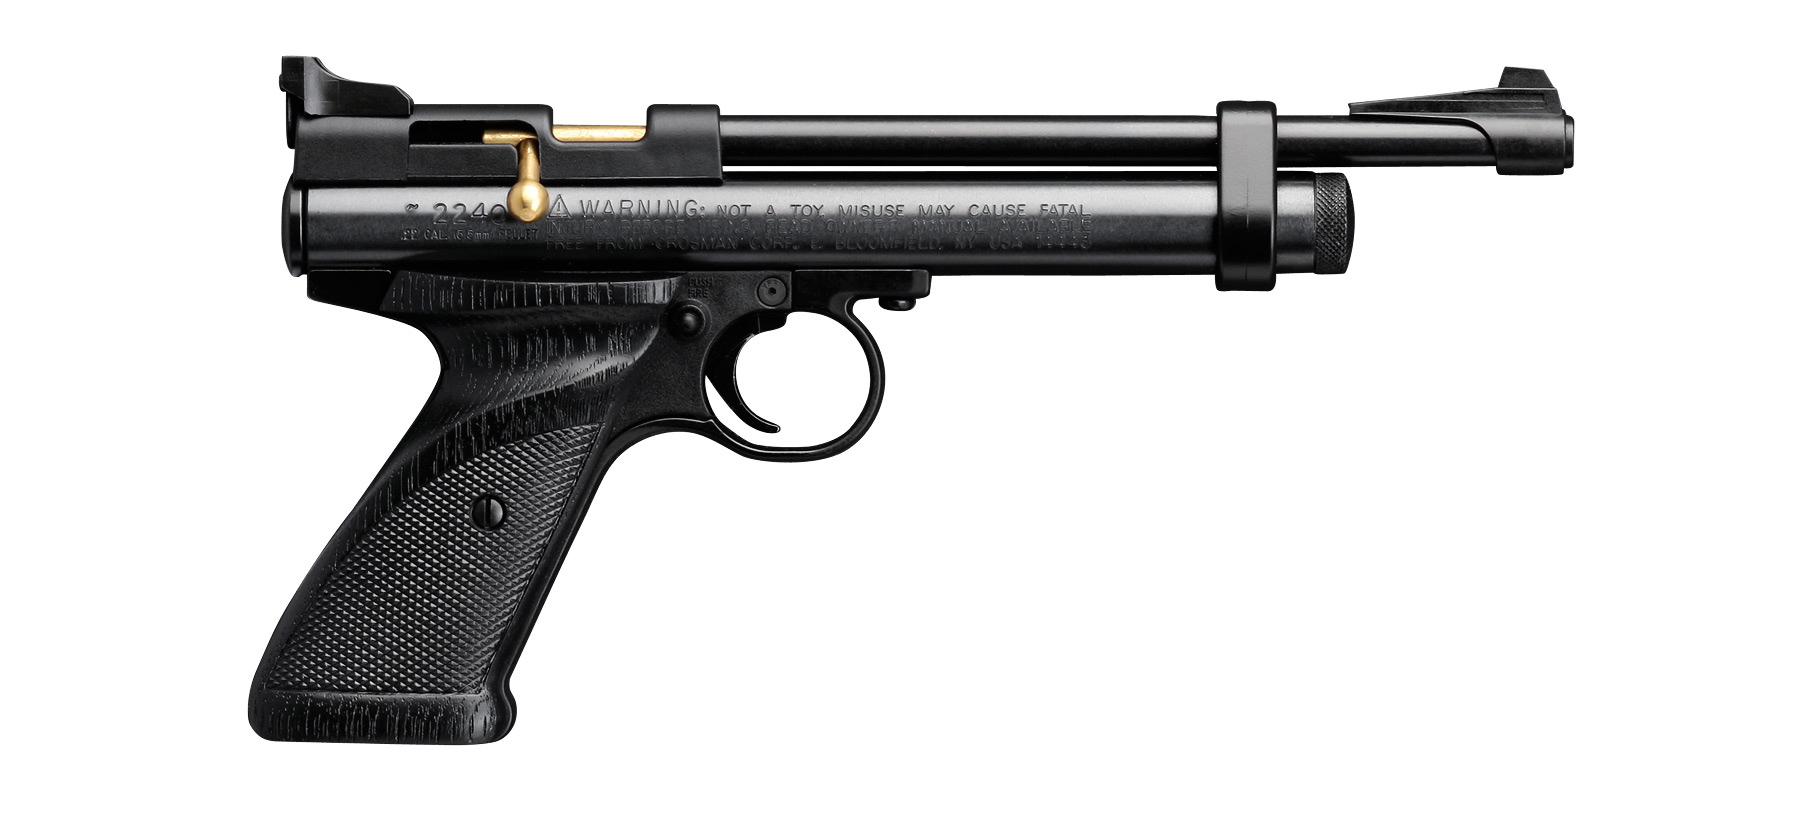 Crosman 2240 5,5mm CO2-Pistol